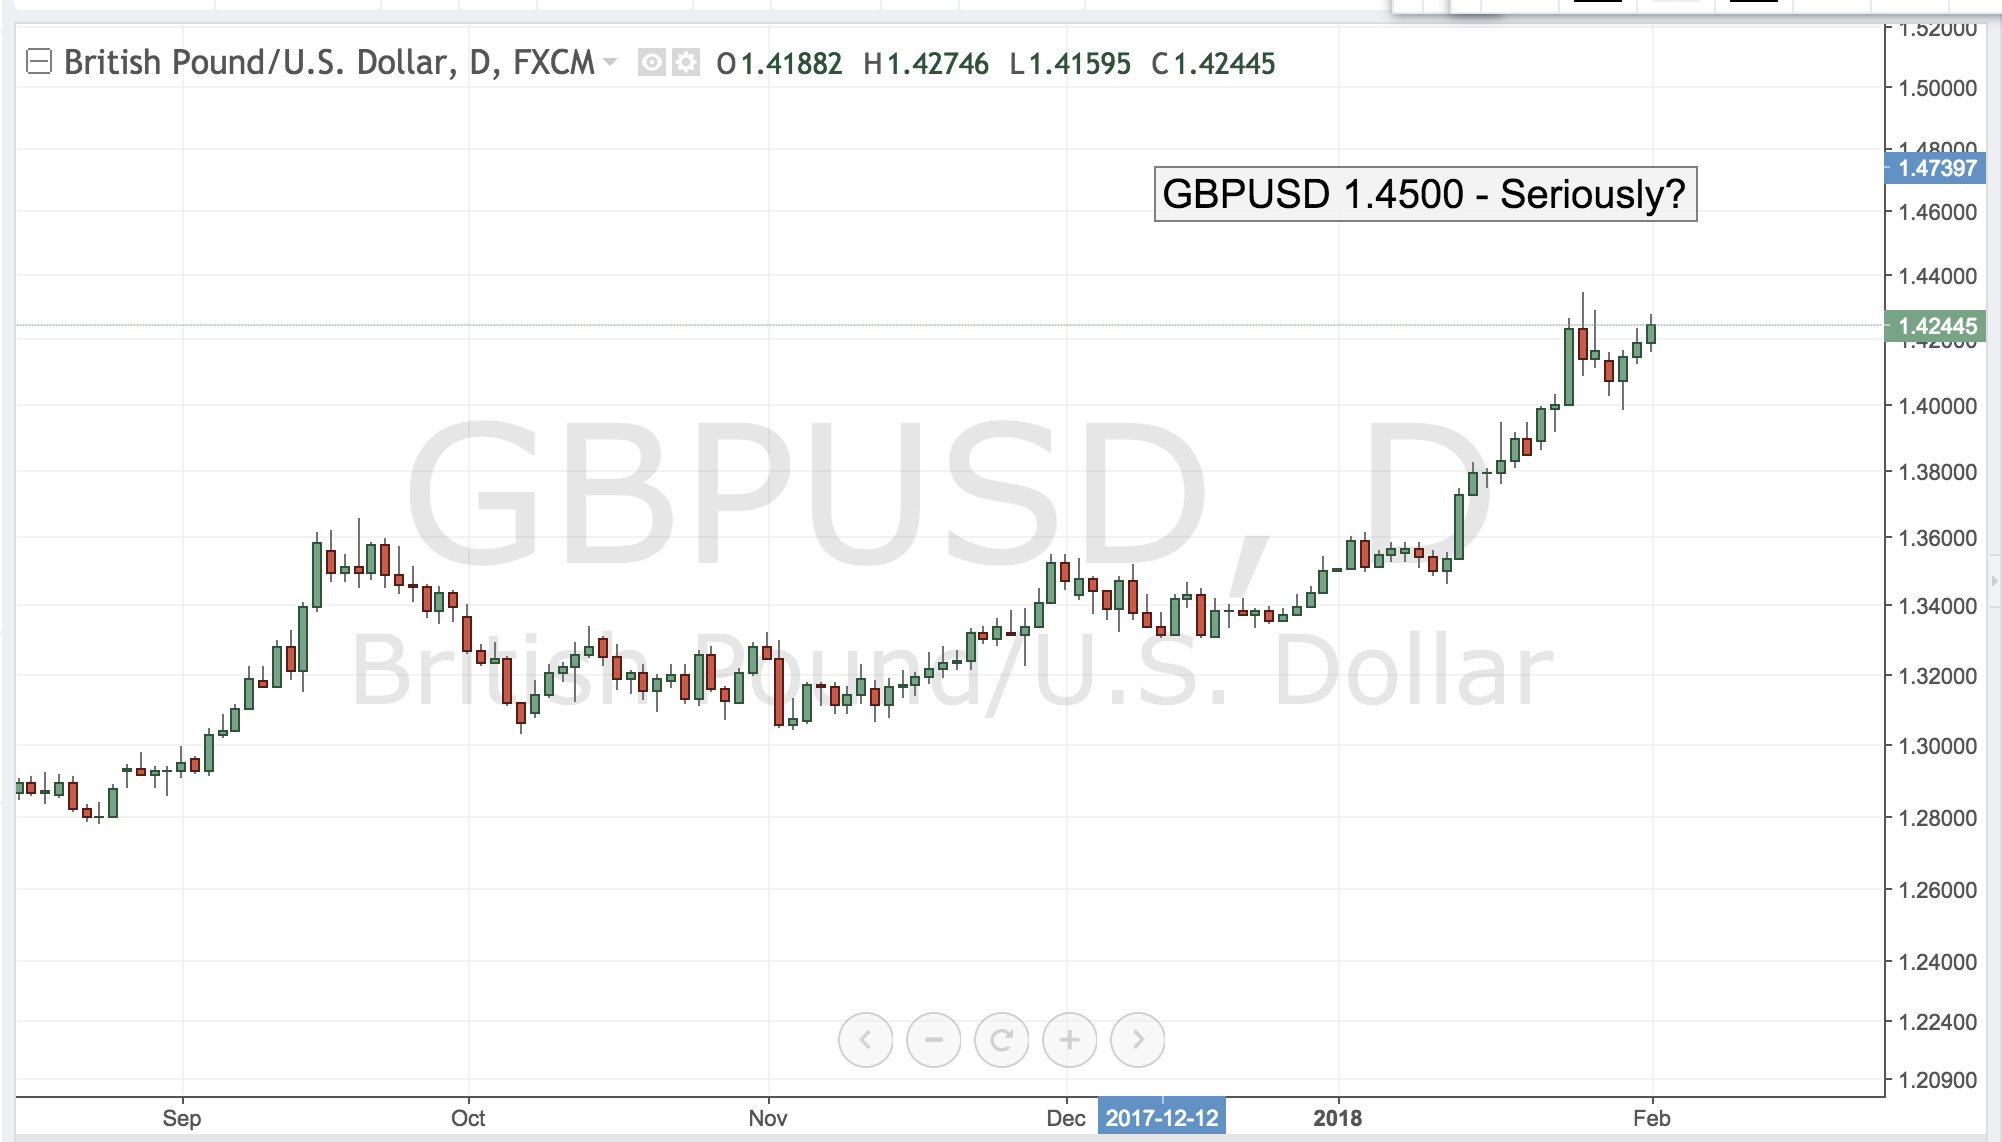 GBPUSD 1.4500 – Seriously?